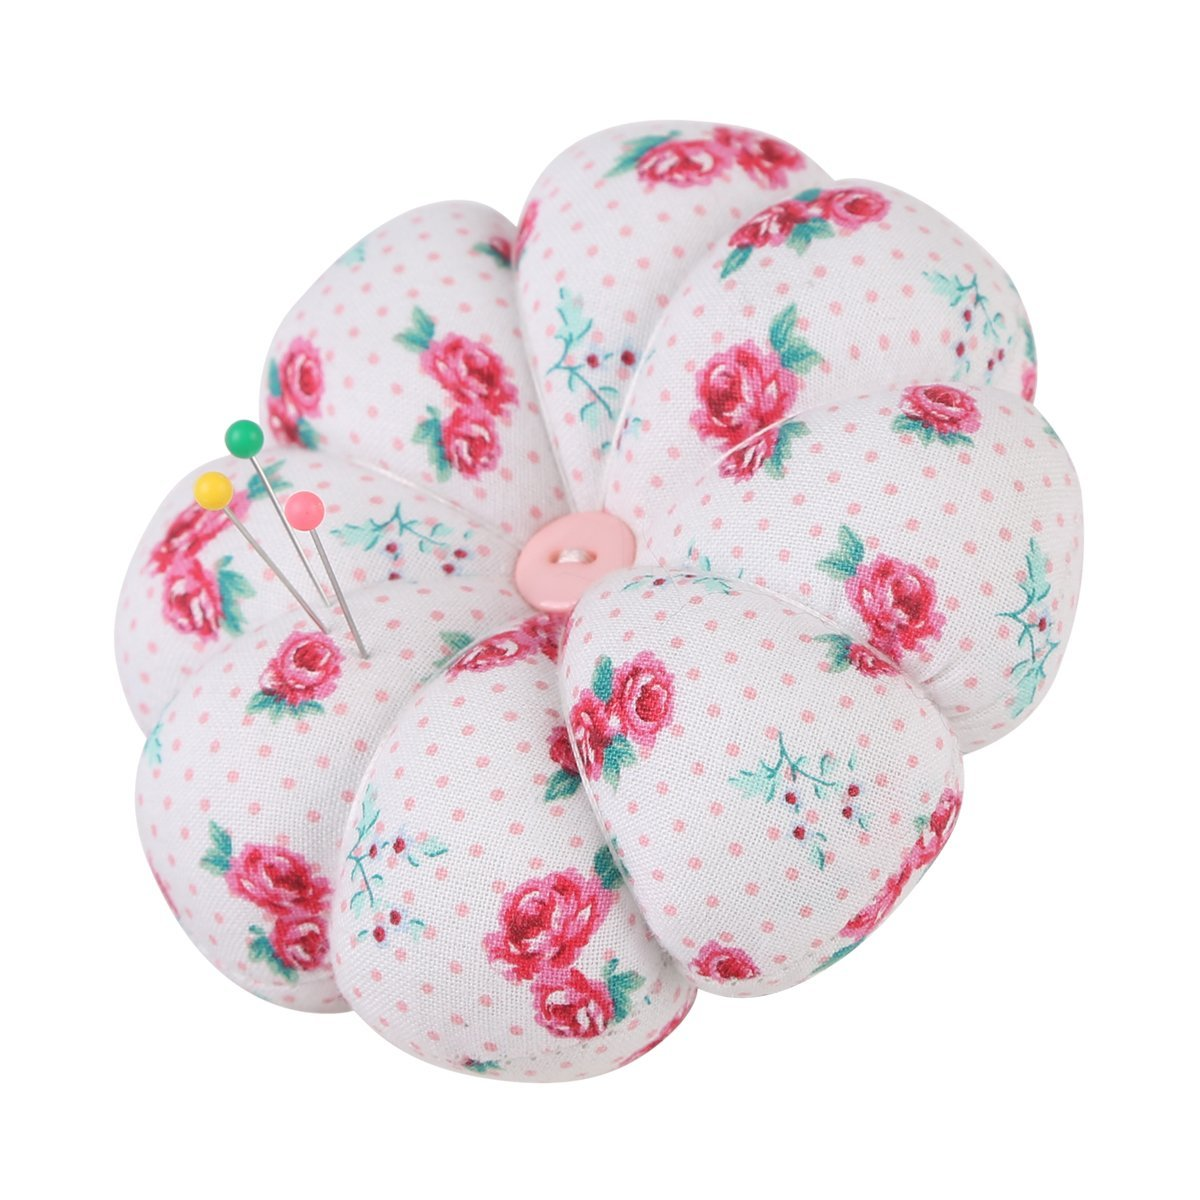 NEOVIVA Flower Shaped Small Pincushions for Sewing with Wrist Band, Style Blossom, Pack of 2, Floral Fuchsia Roses LTD. PinCushion_Blossom